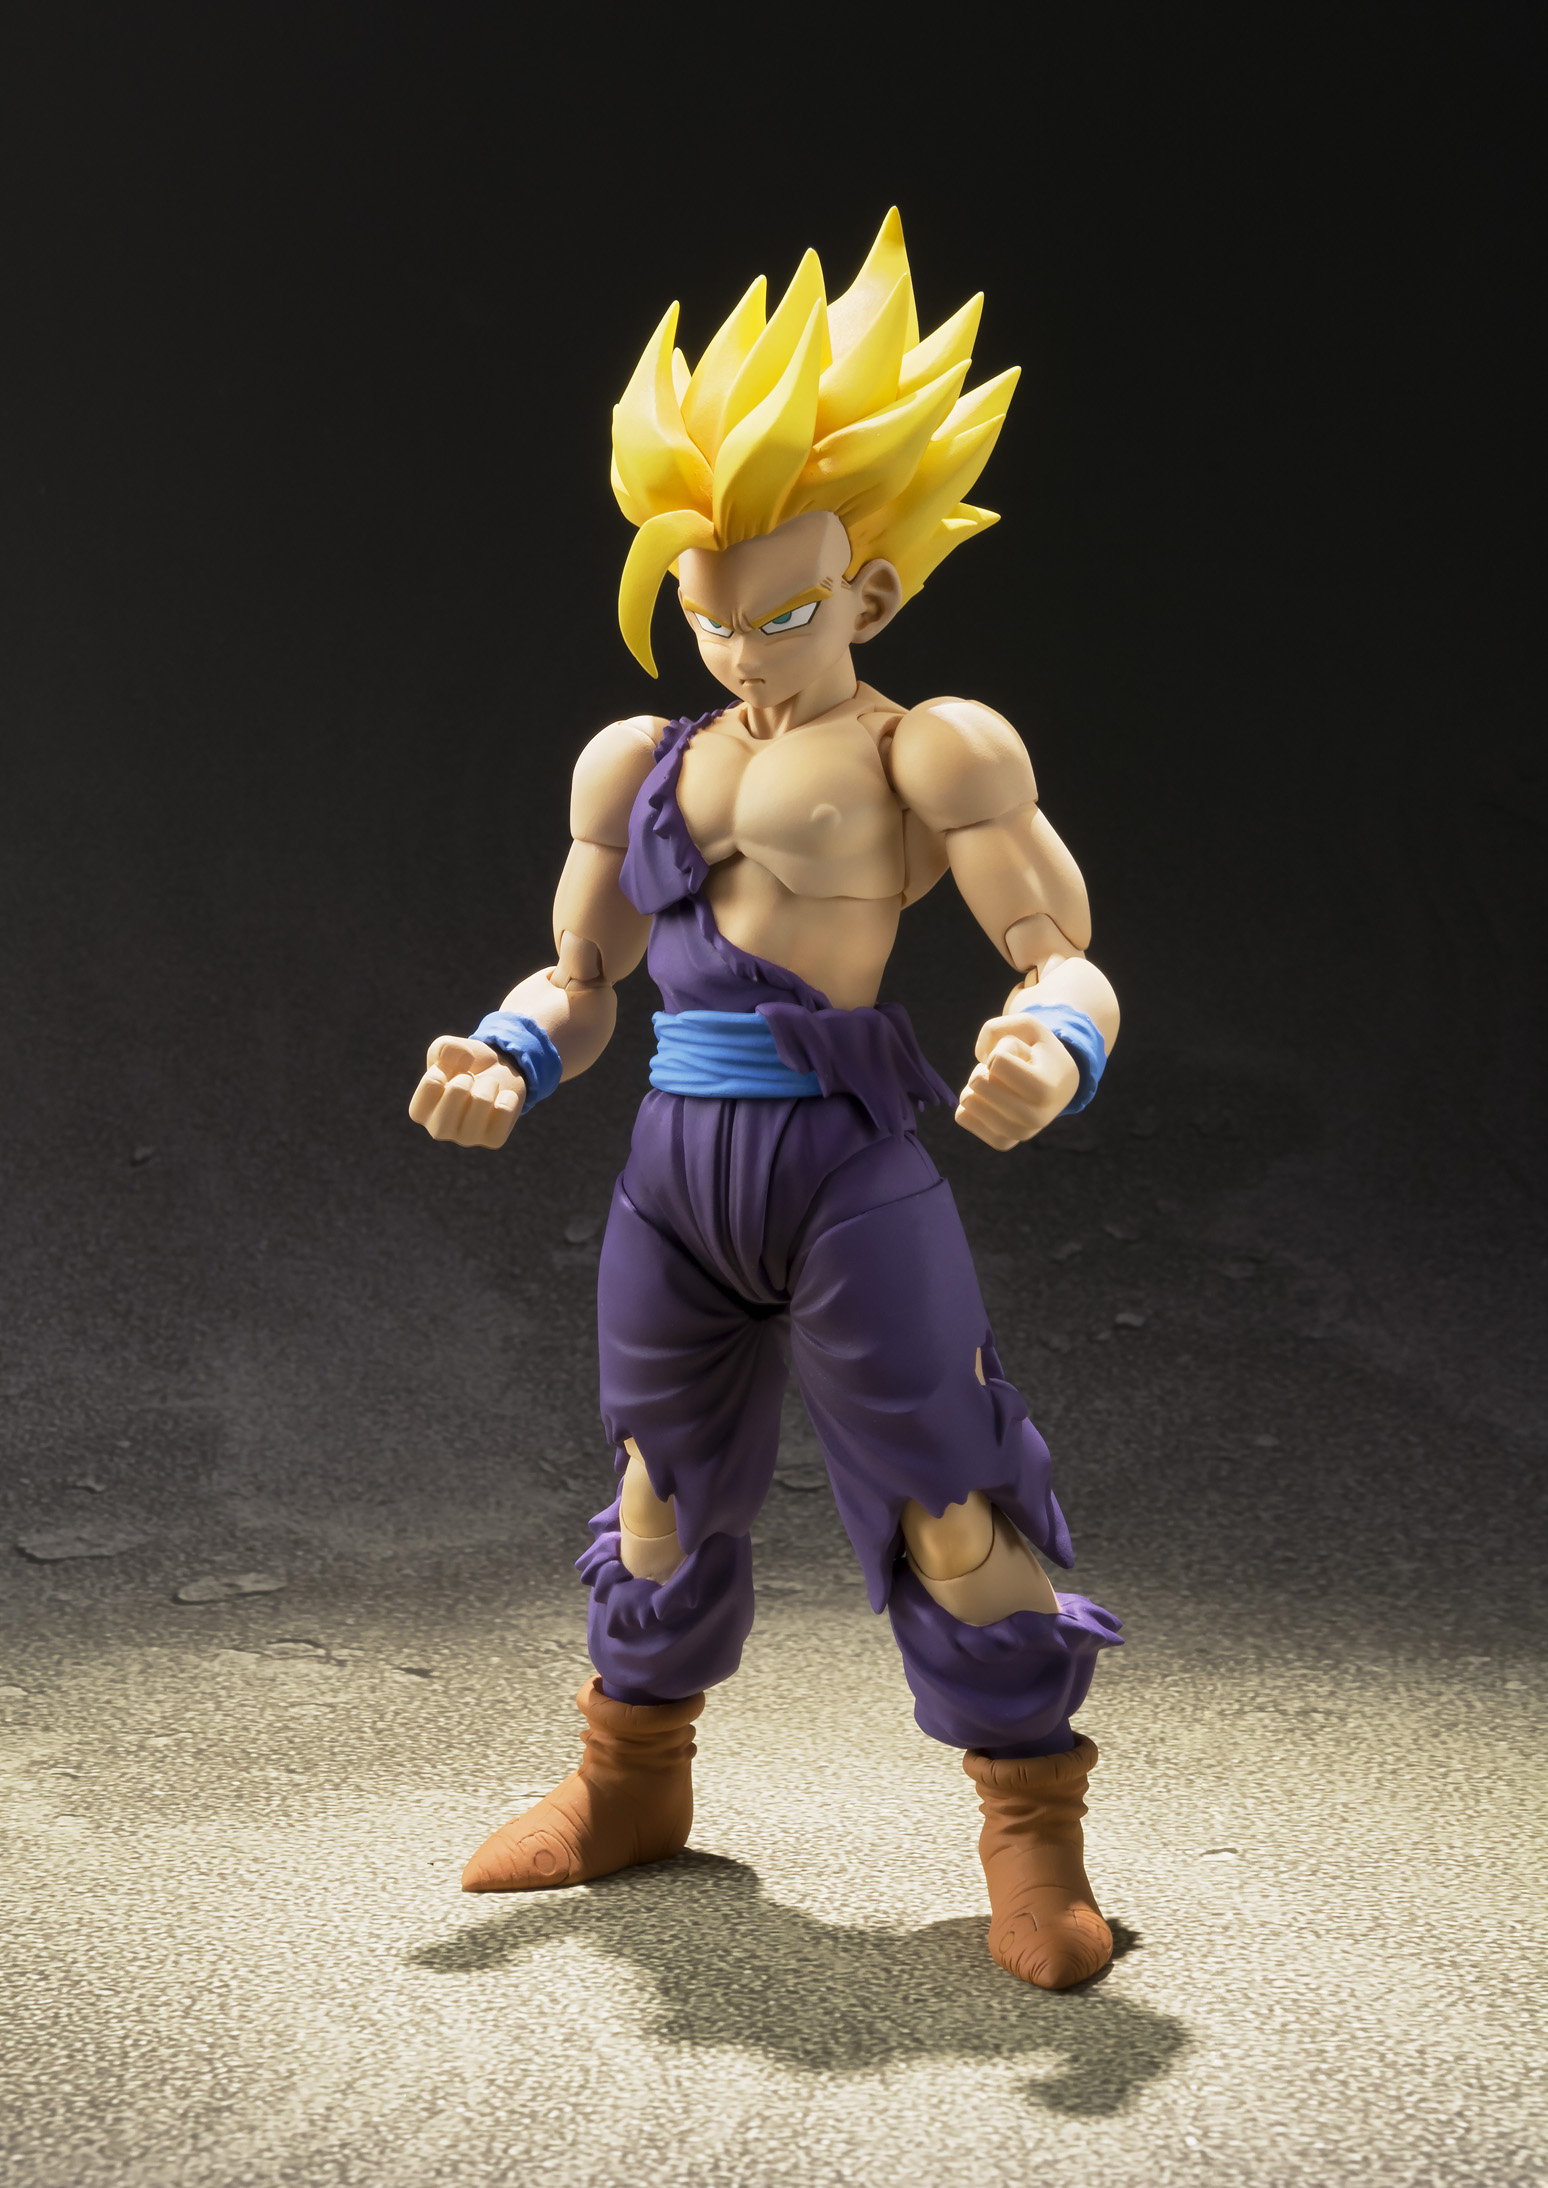 Super Saiyan Gohan Dragon Ball Z Figure 4543112934024